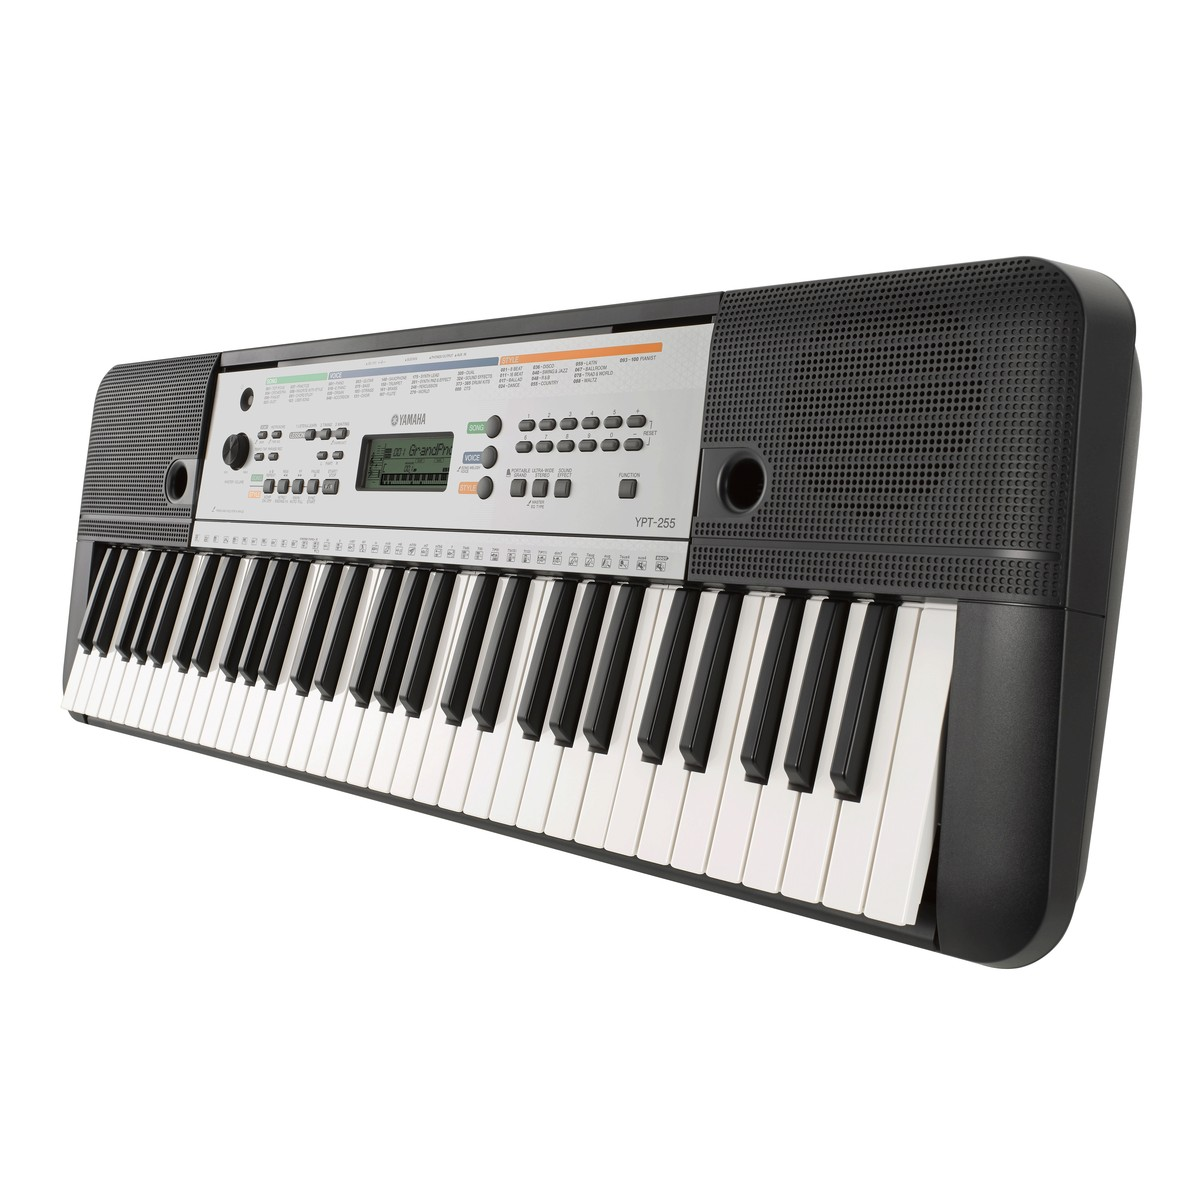 yamaha ypt 255 61 key portable keyboard at. Black Bedroom Furniture Sets. Home Design Ideas